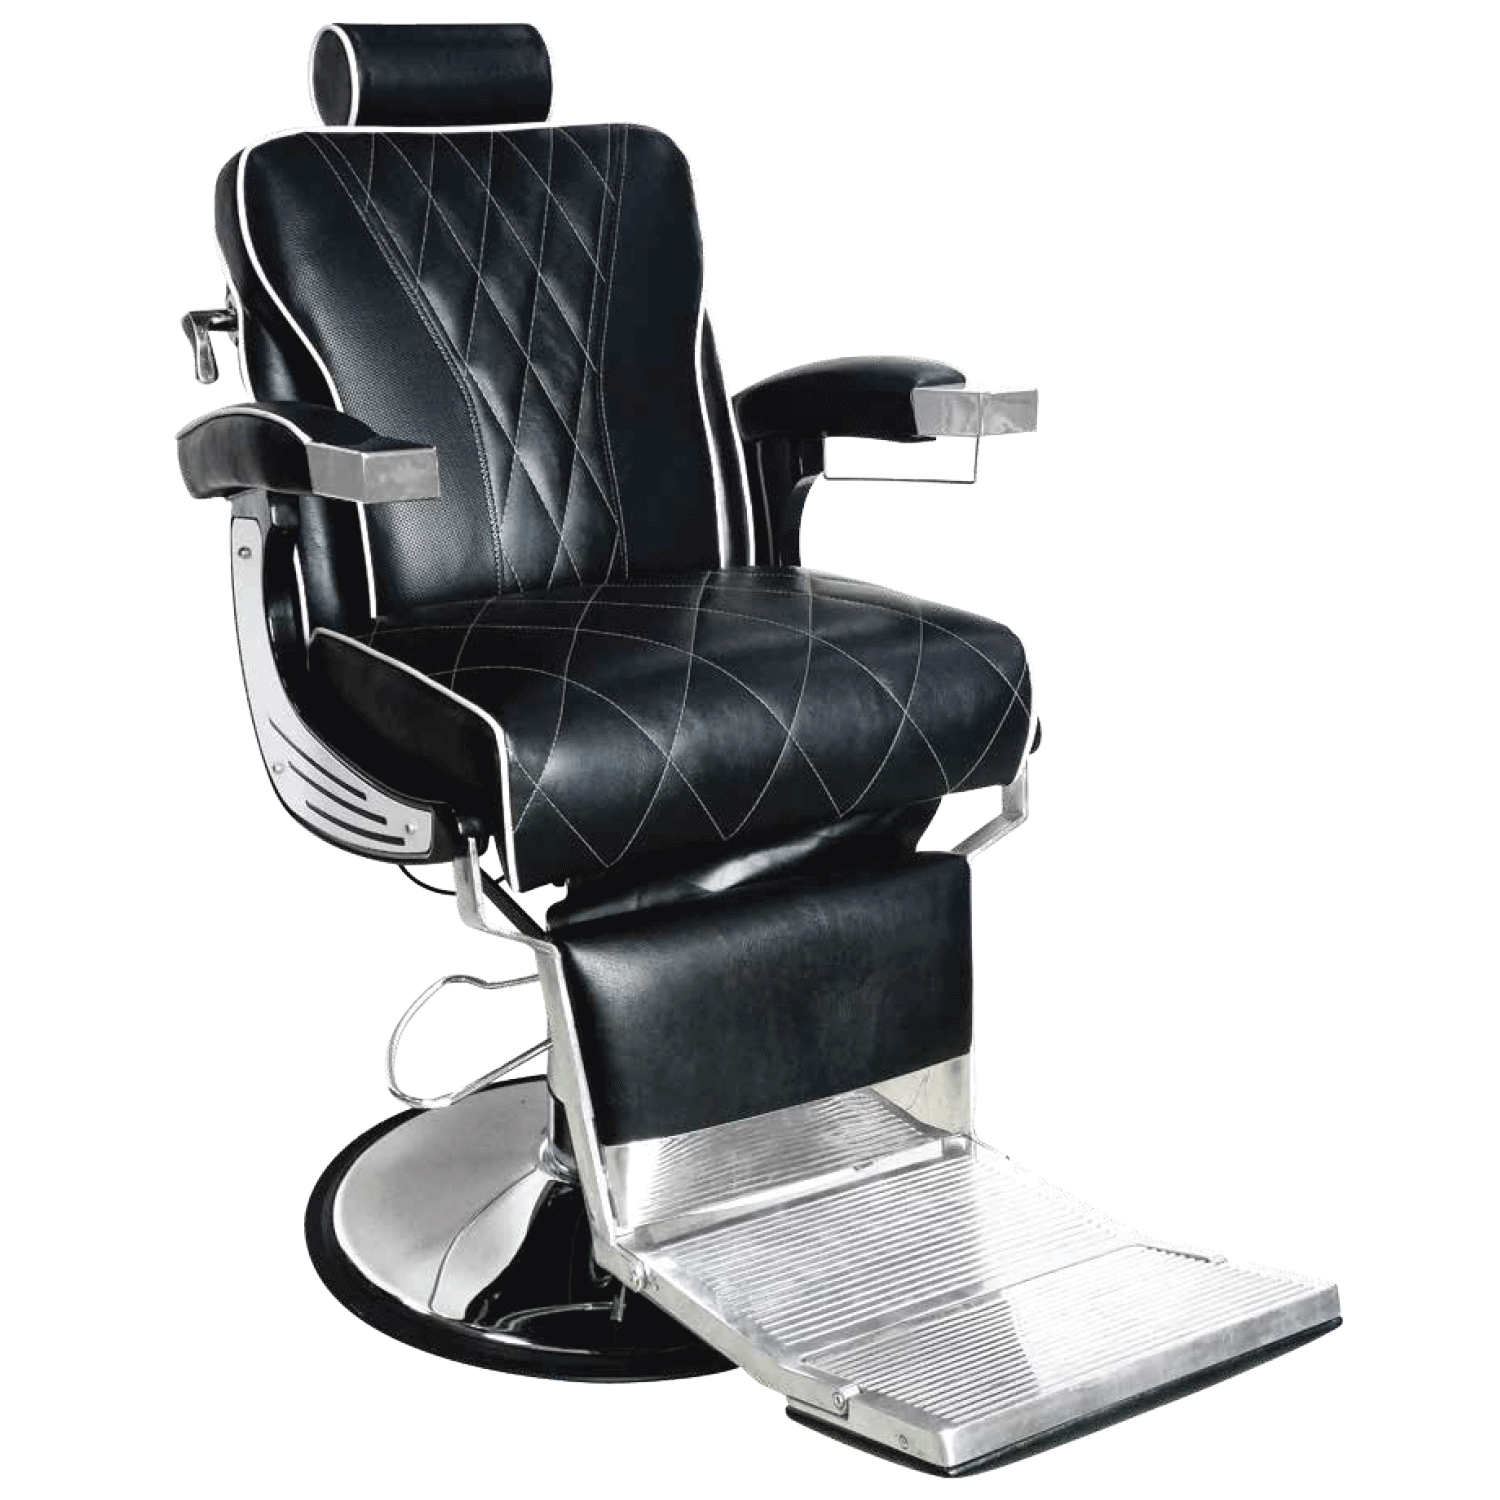 Barber Shop Chairs Barburys Black Barber Chair